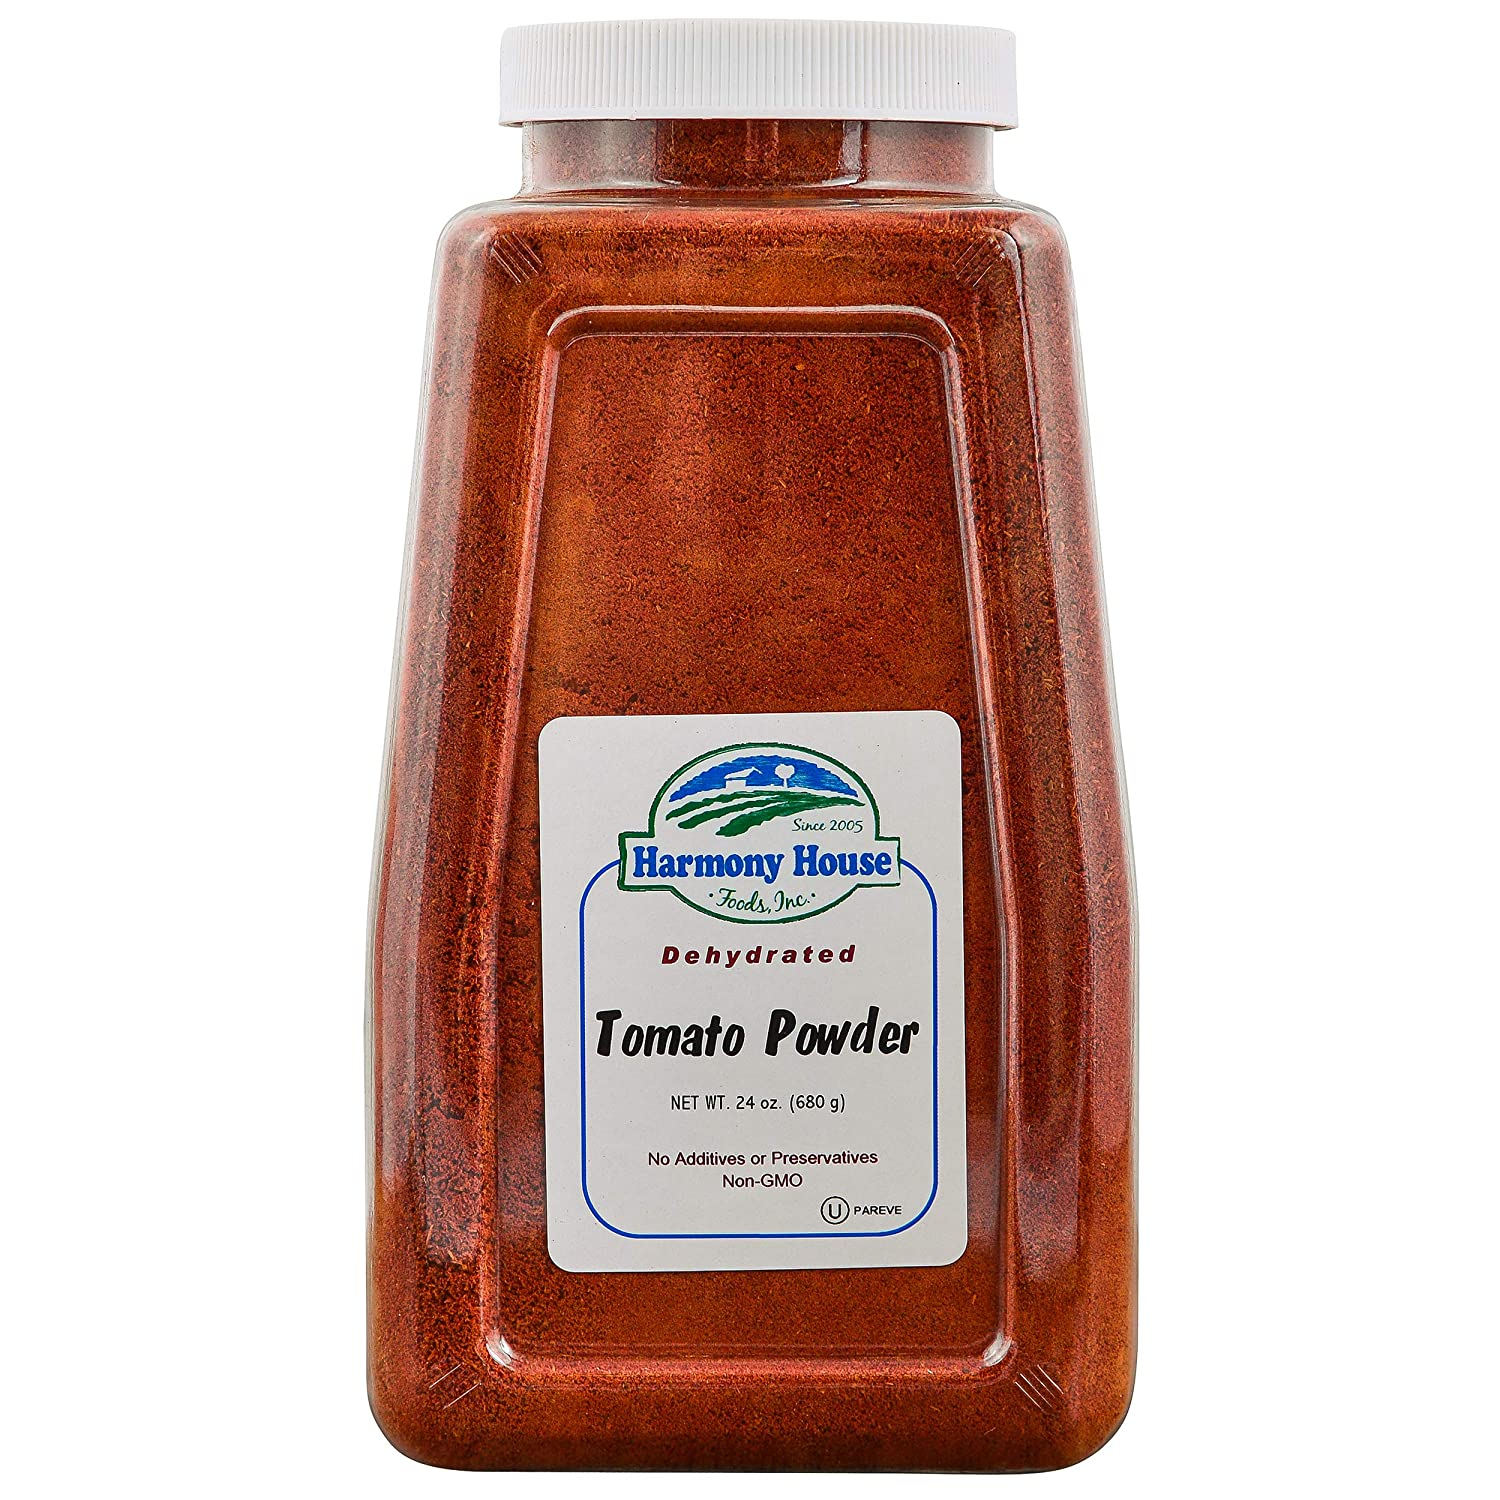 Premium Dehydrated Tomato Powder, 22 oz Size Quart Jar - From Harvest Red Tomatoes by Harmony House Foods